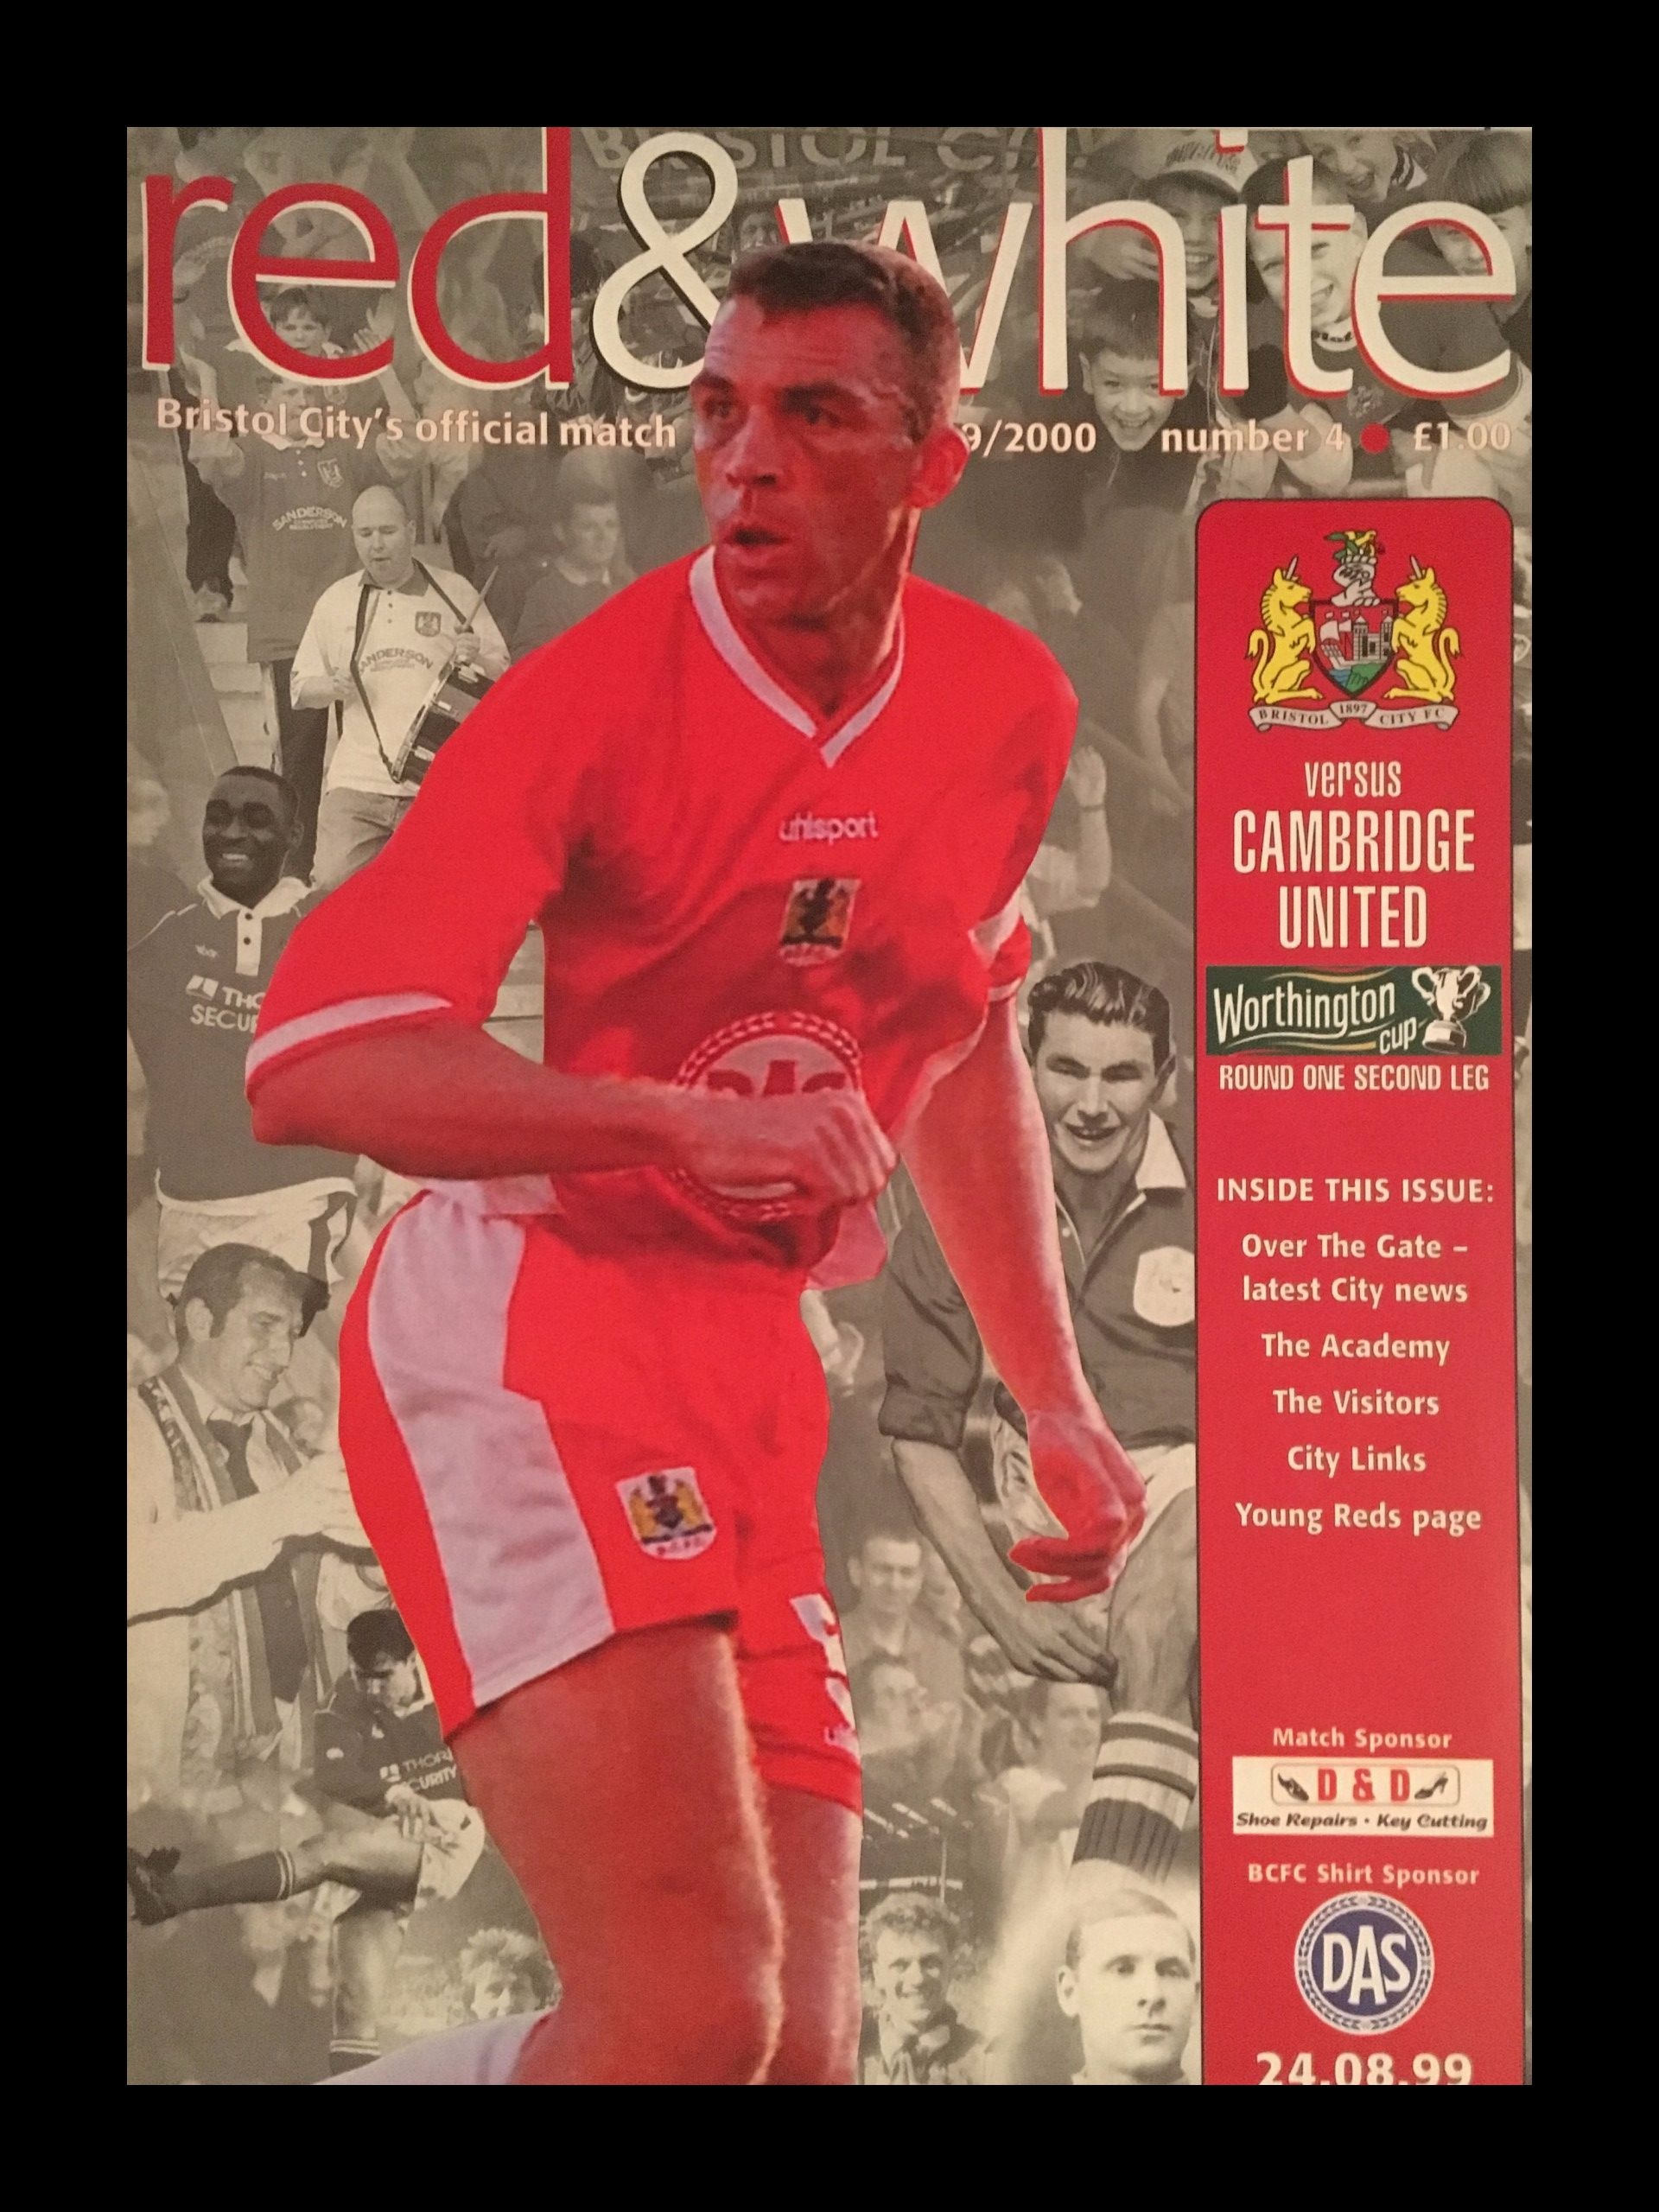 Bristol City v Cambridge United 24-08-1999 Programme